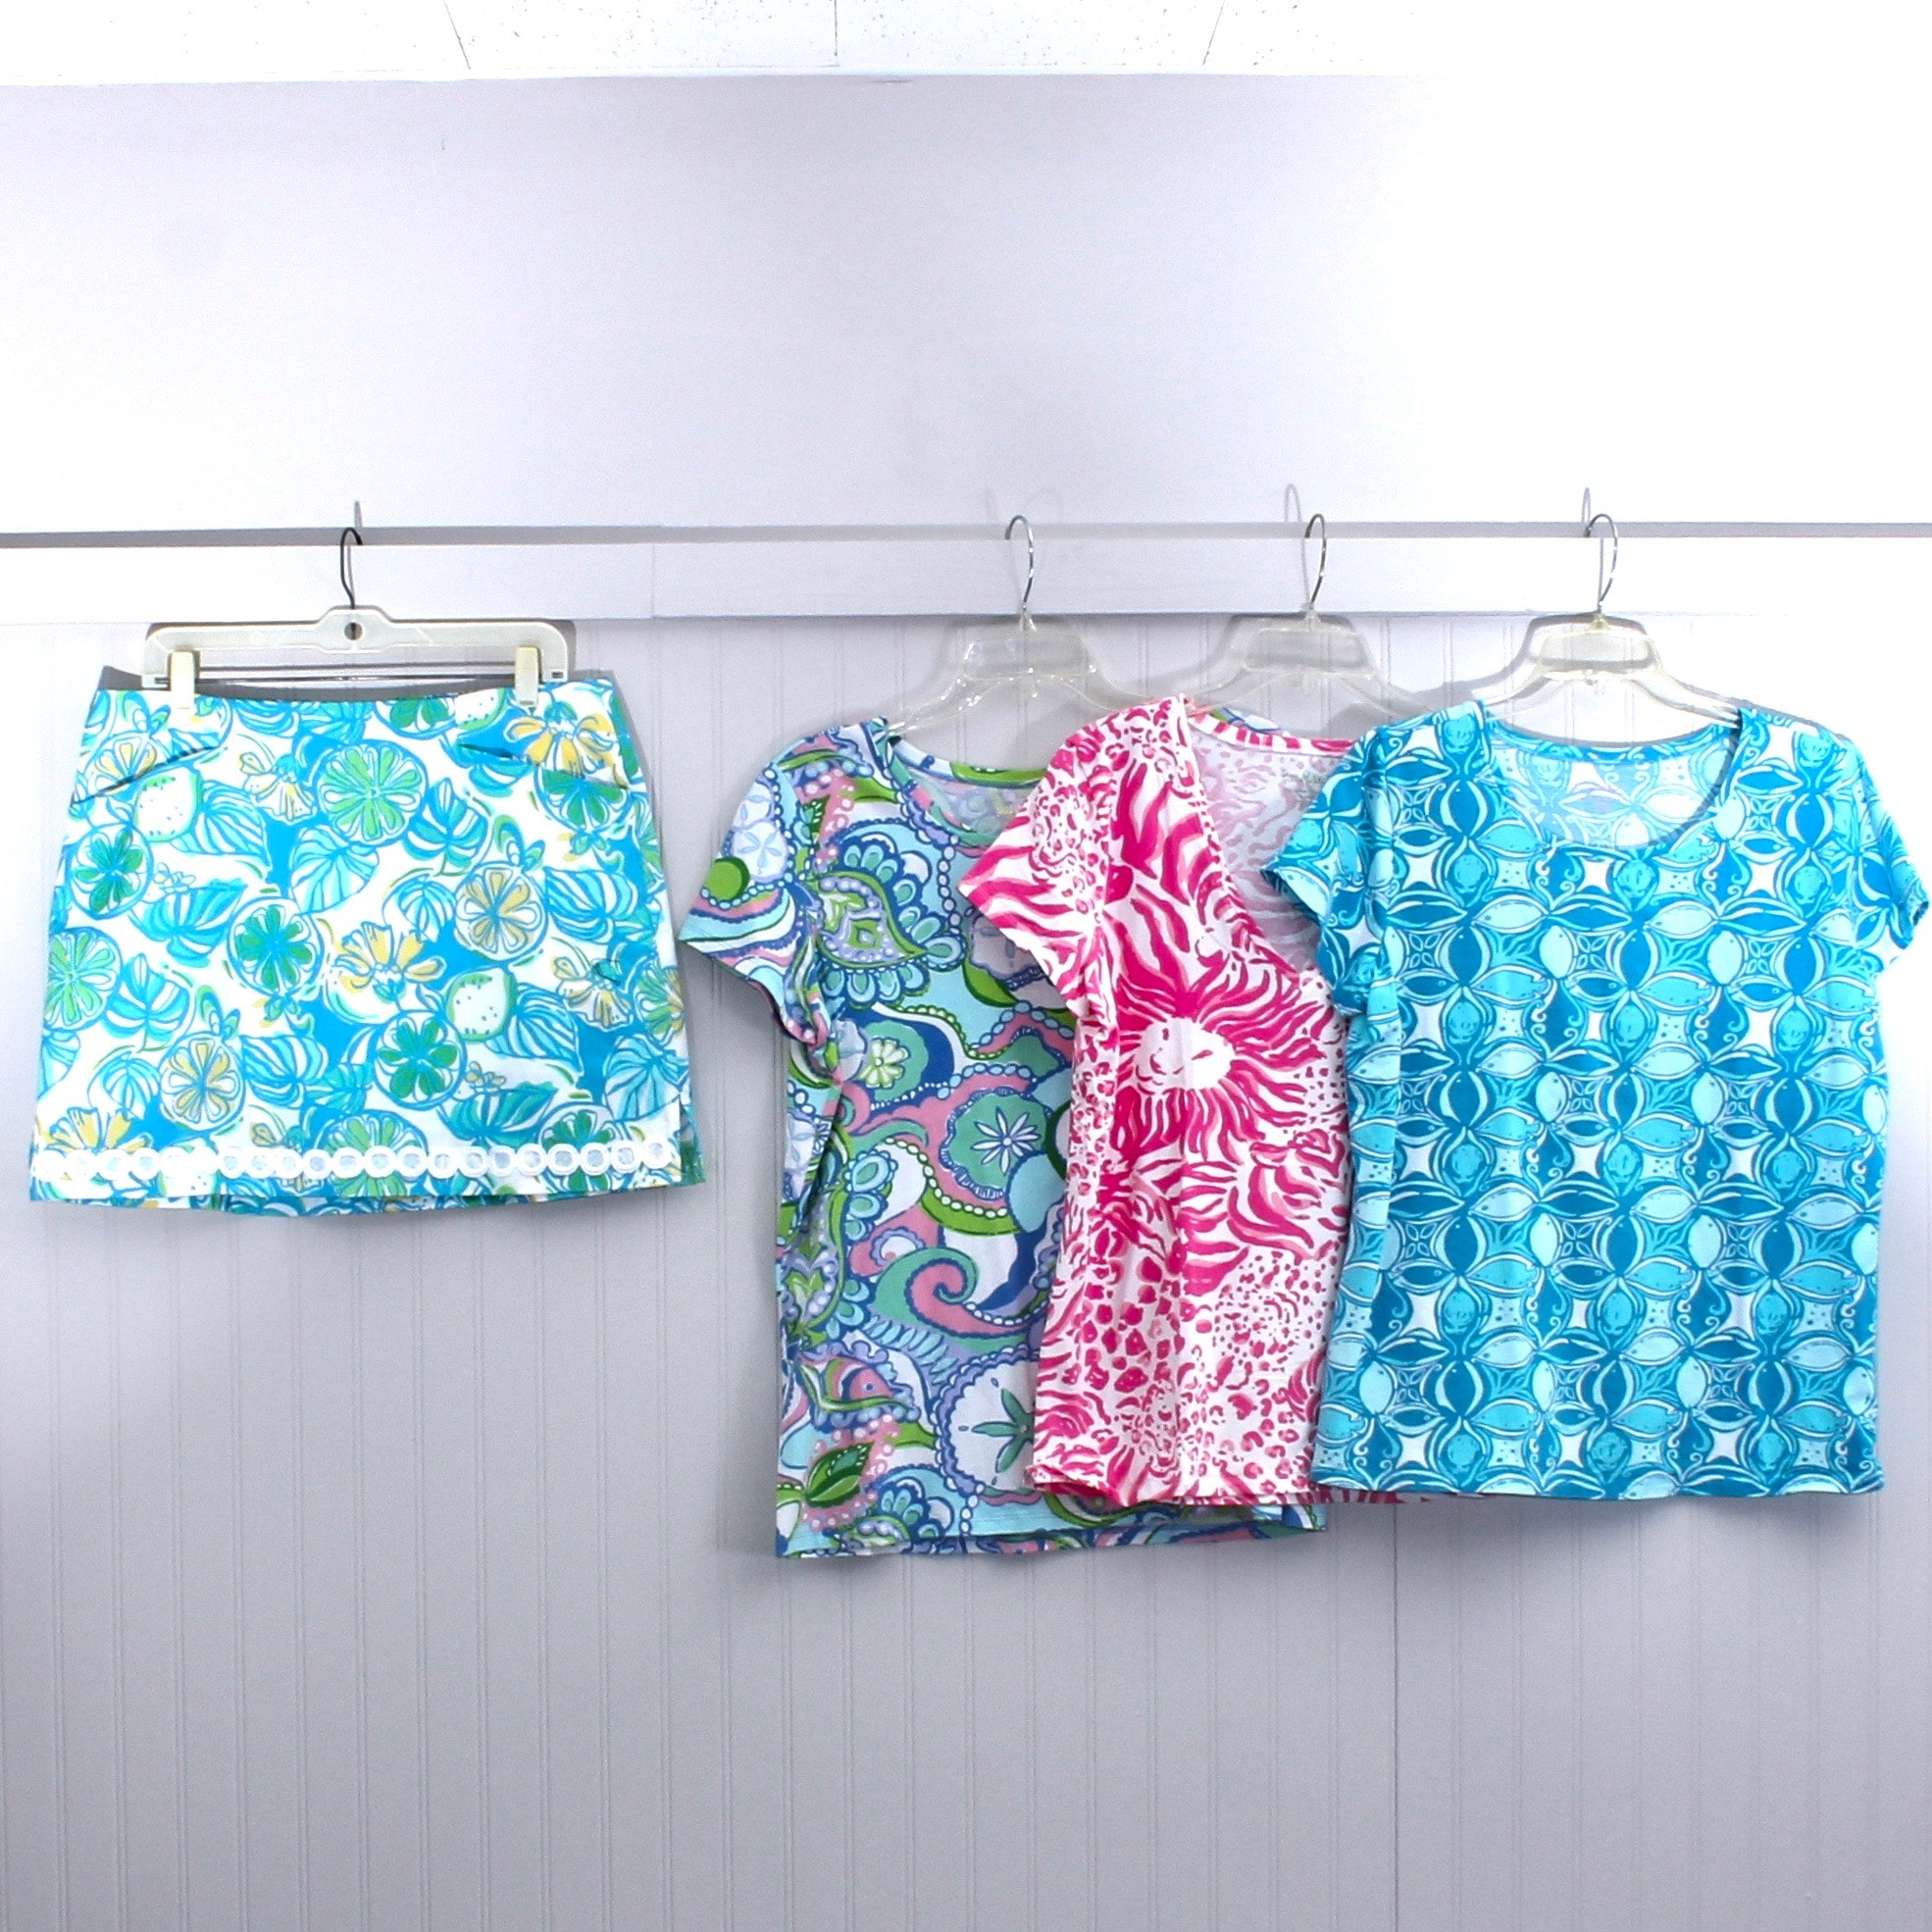 Women's Lilly Pulitzer Tops and Skirt